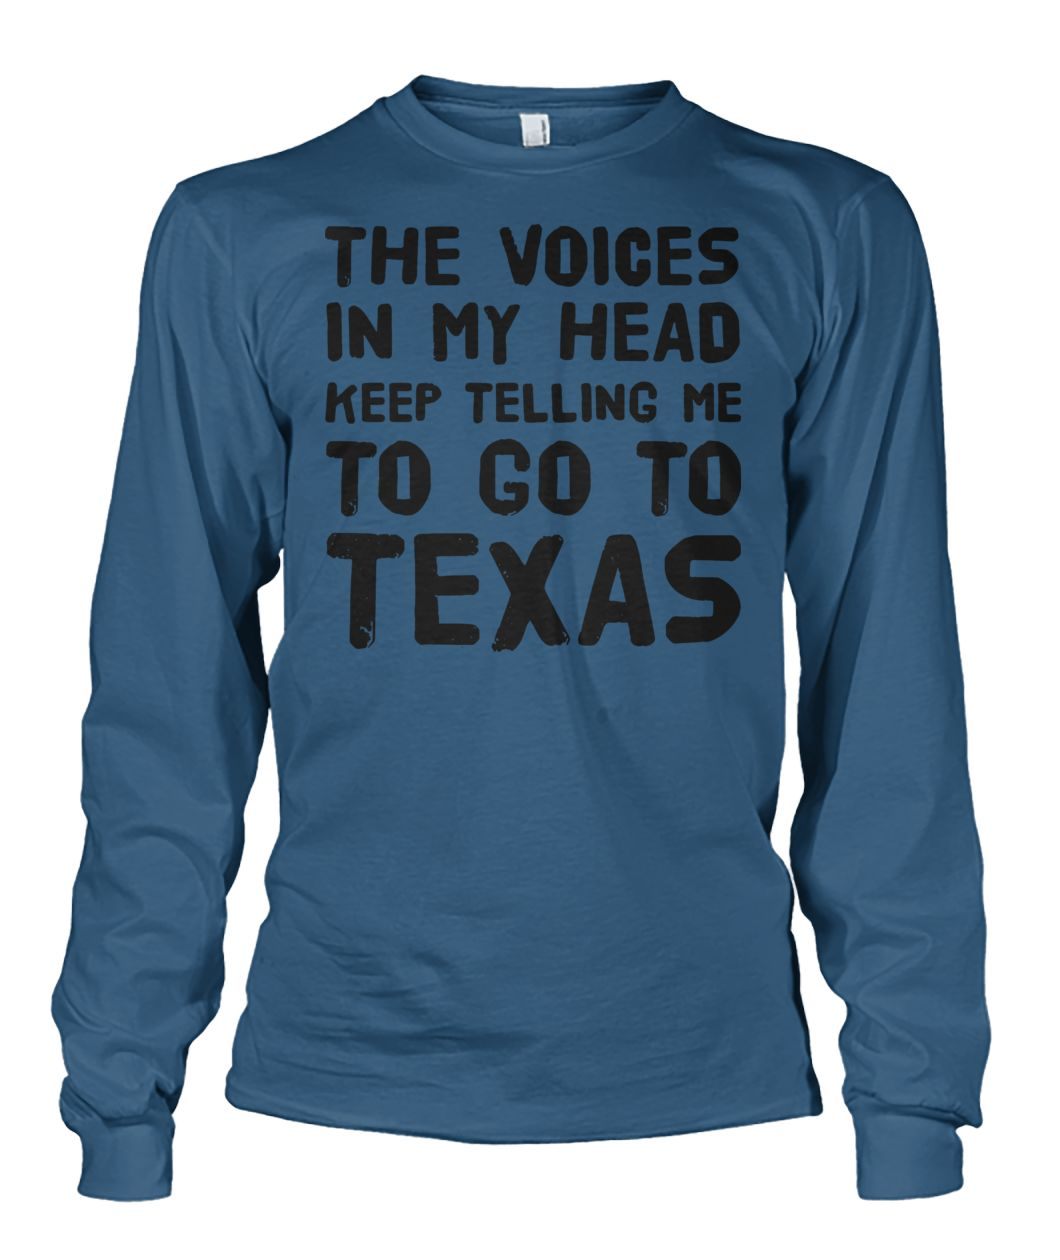 The voices in my head keep telling me to go to texas unisex long sleeve